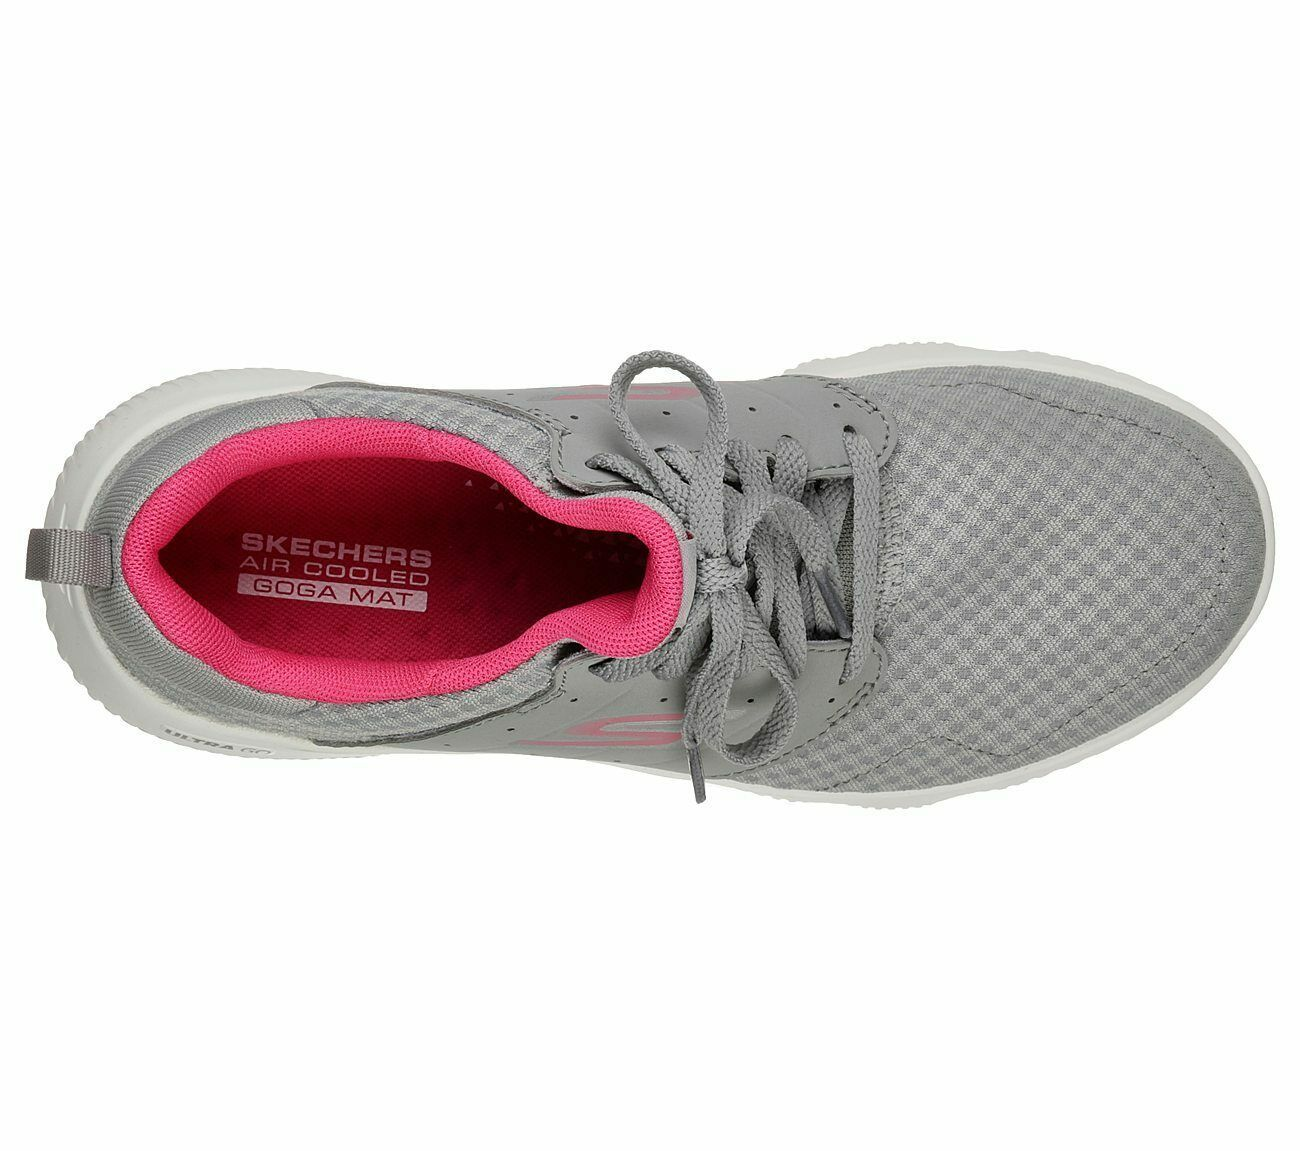 Skechers Gray Pink shoes Women's Sport Go Run Athletic Mesh Comfort Casual 15162 image 5